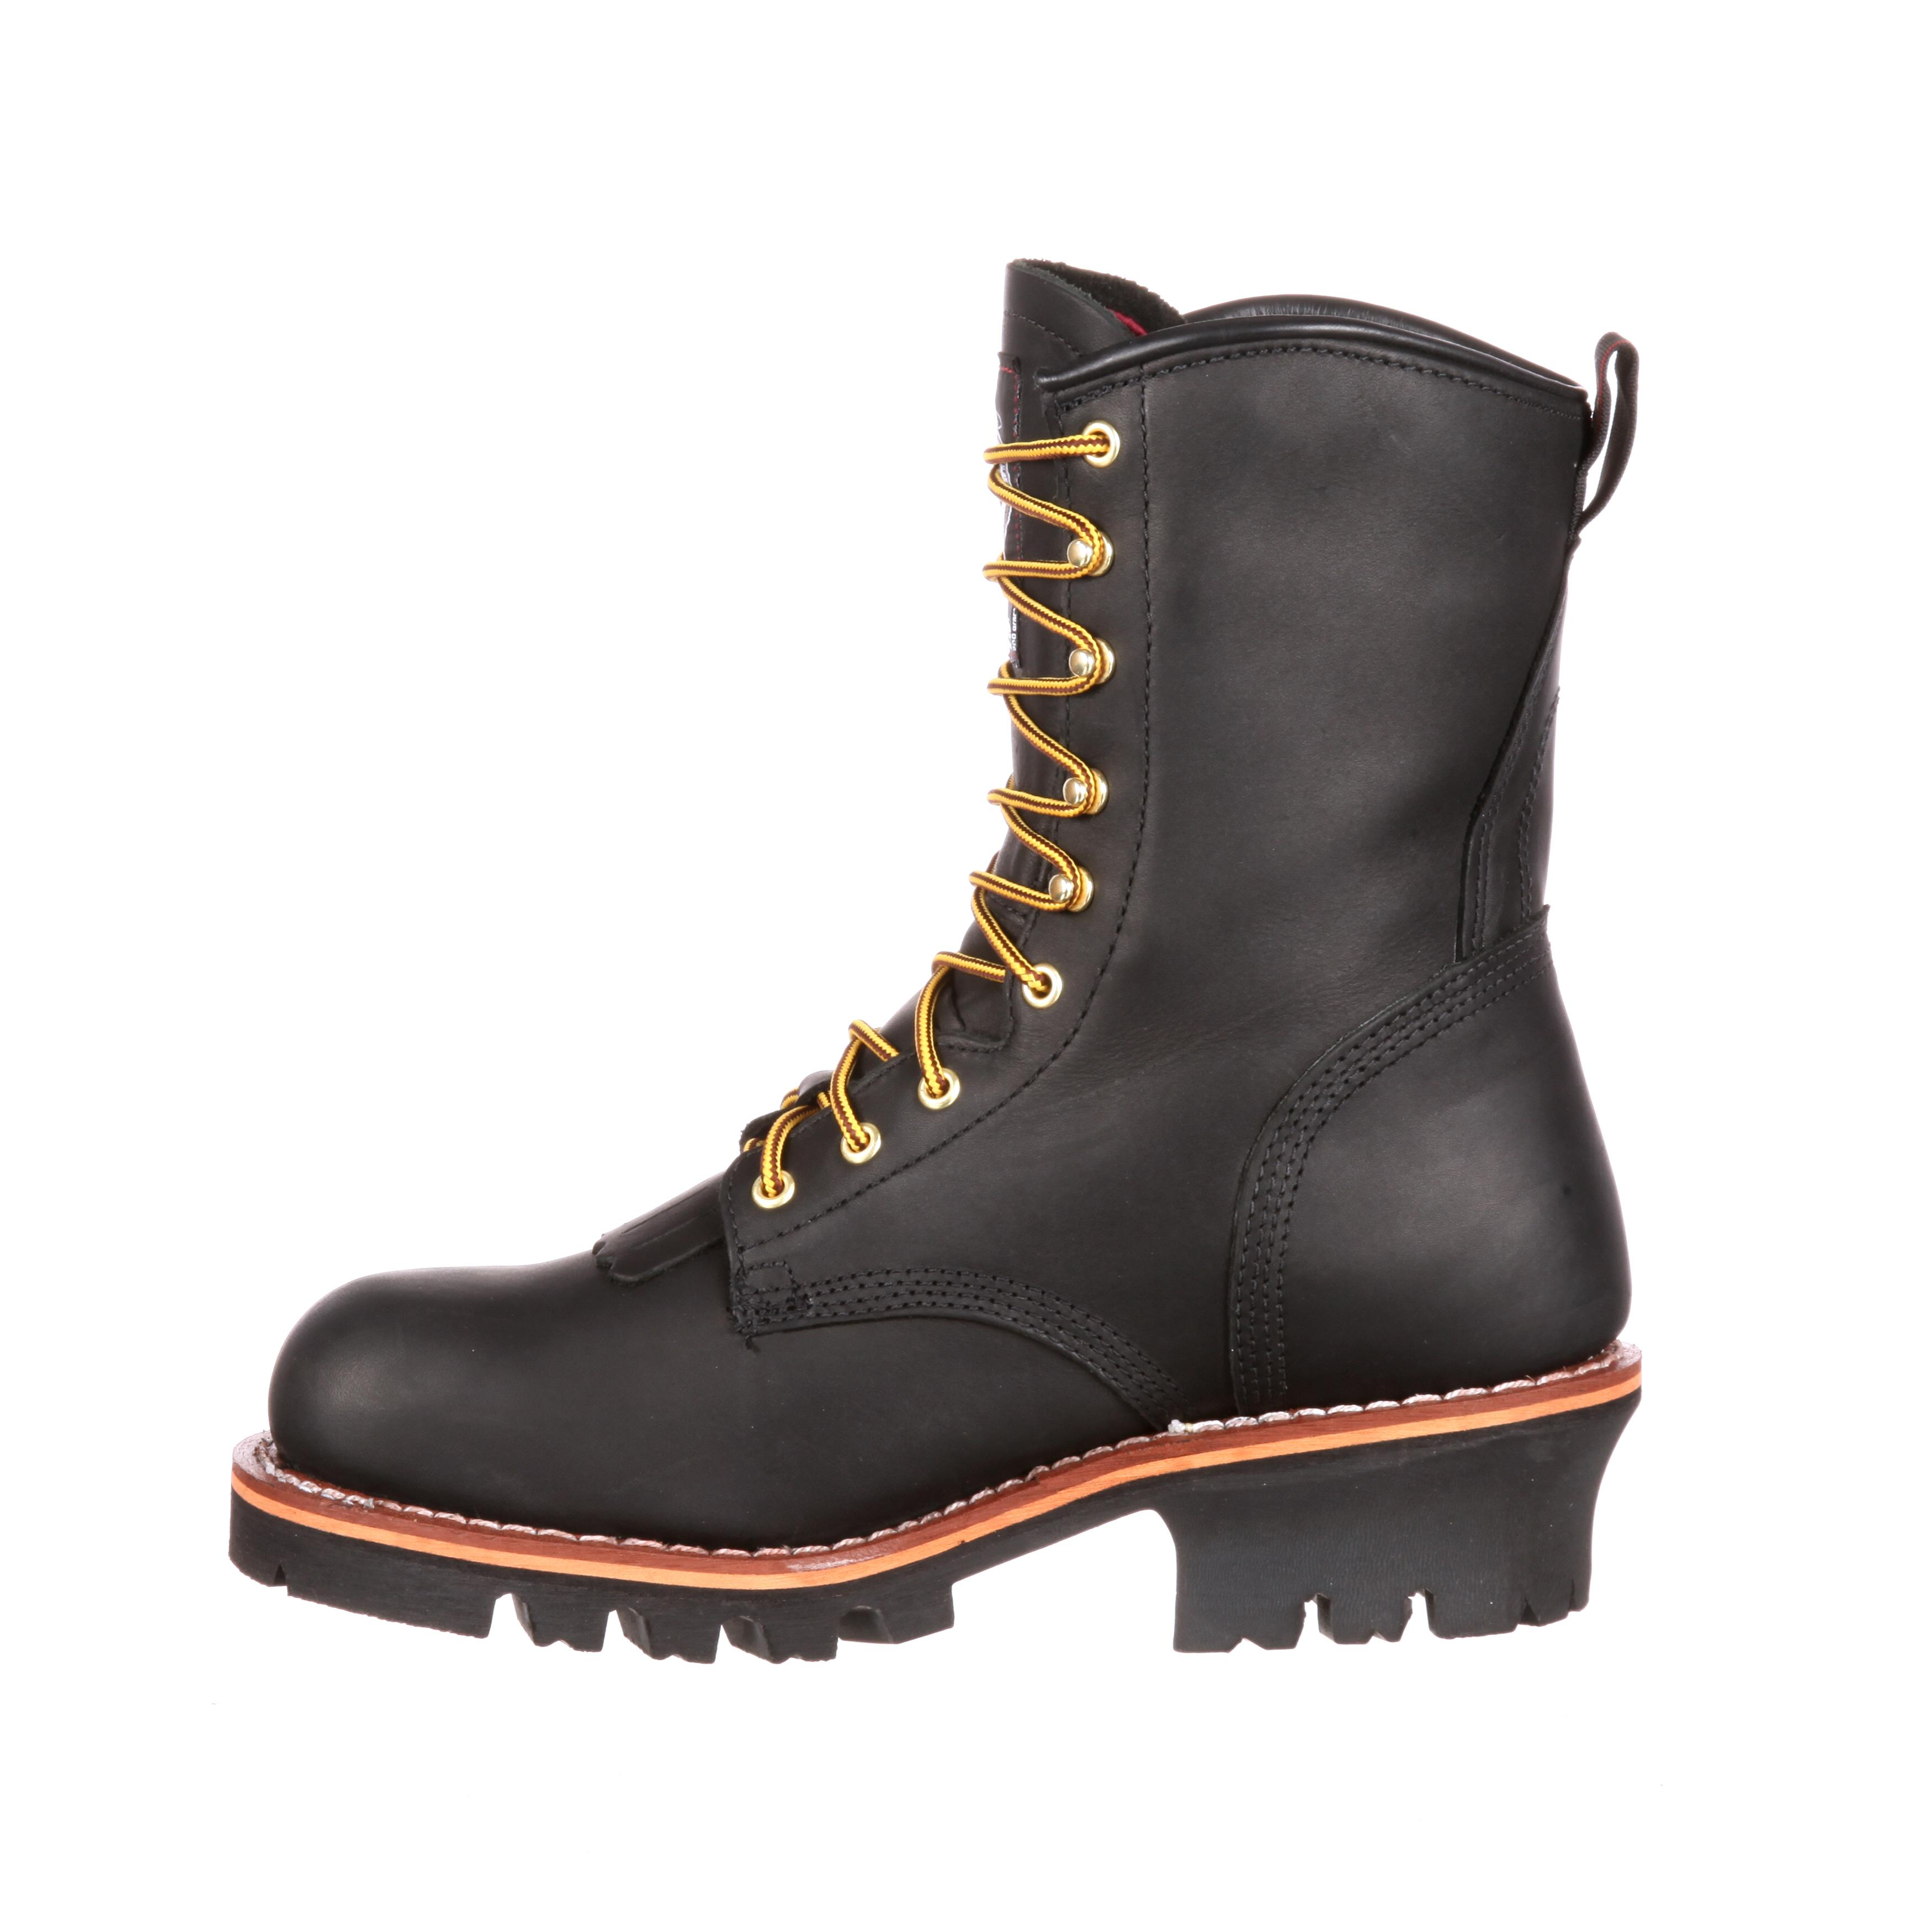 785e7db4e34 Georgia GORE-TEX® Waterproof Steel Toe Logger Boots